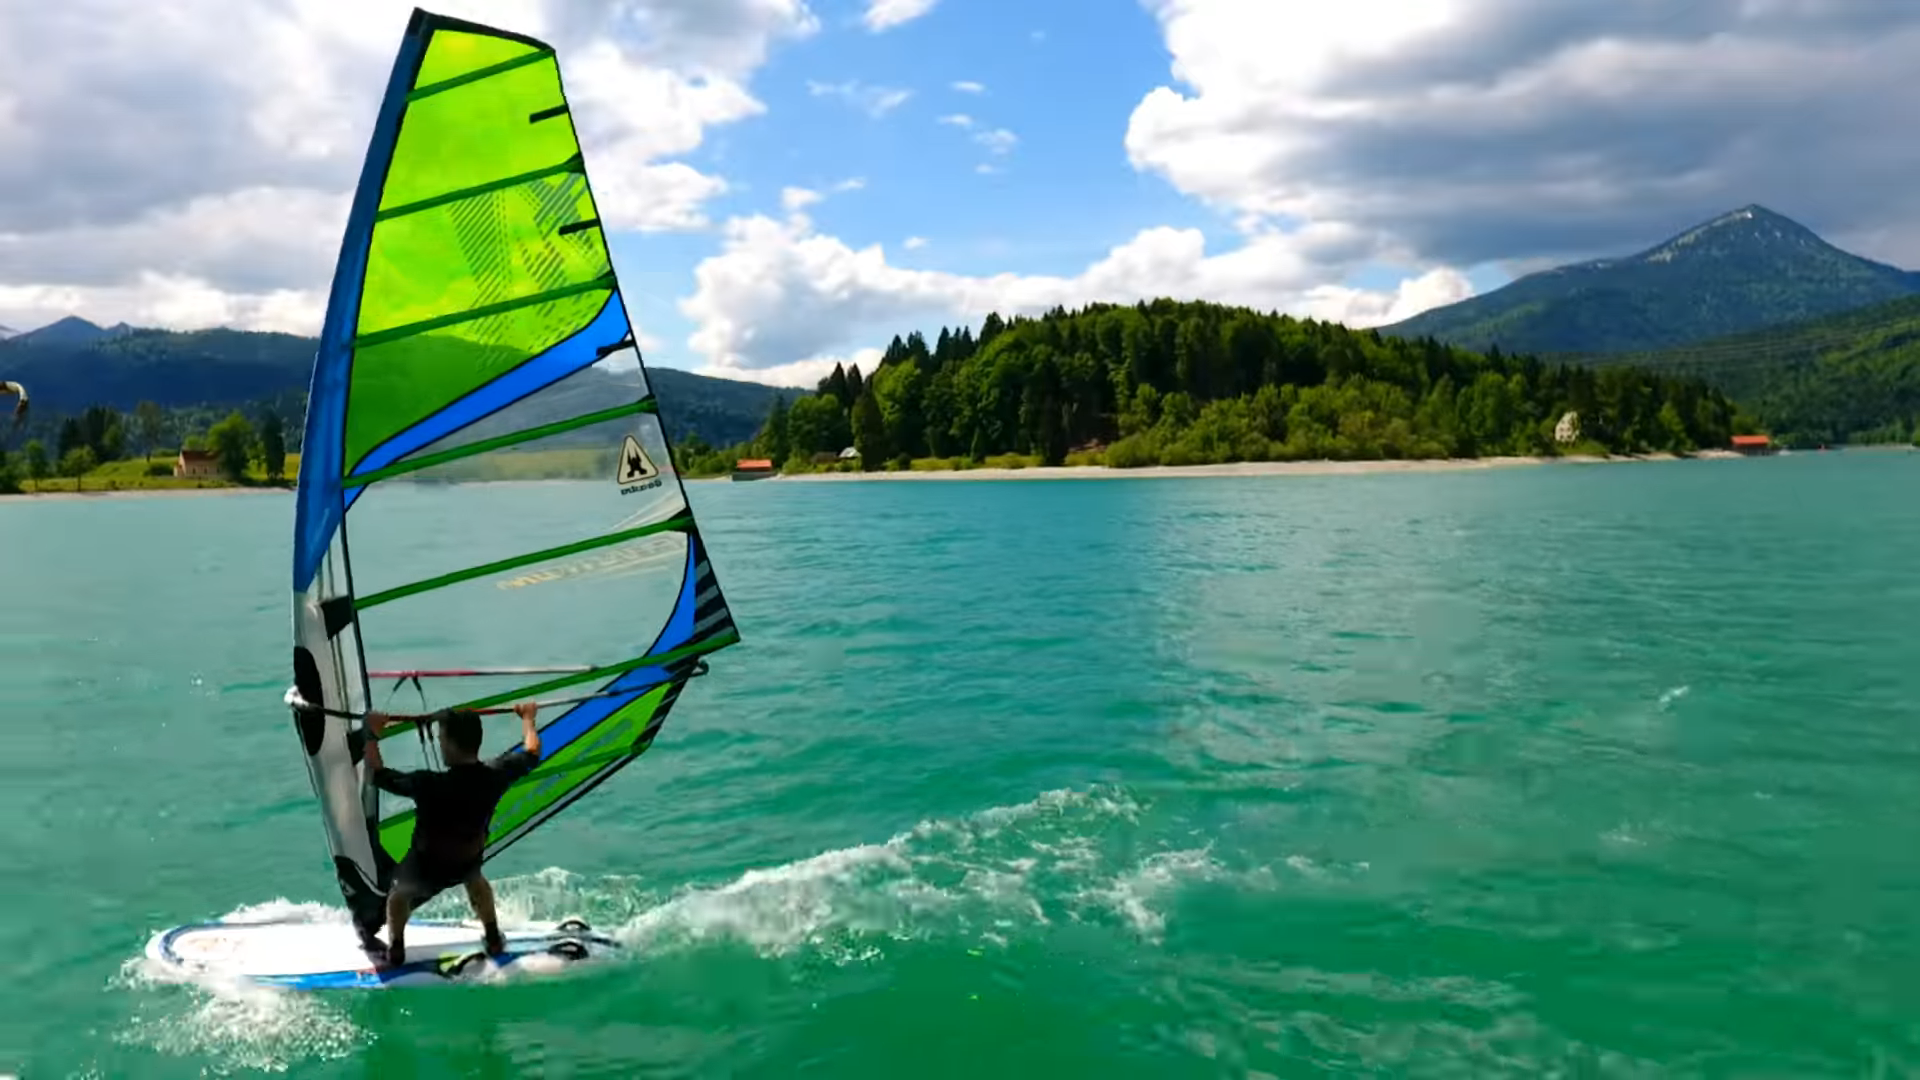 Fun and Relax Windsurfing in Walchensee. Drone Shots